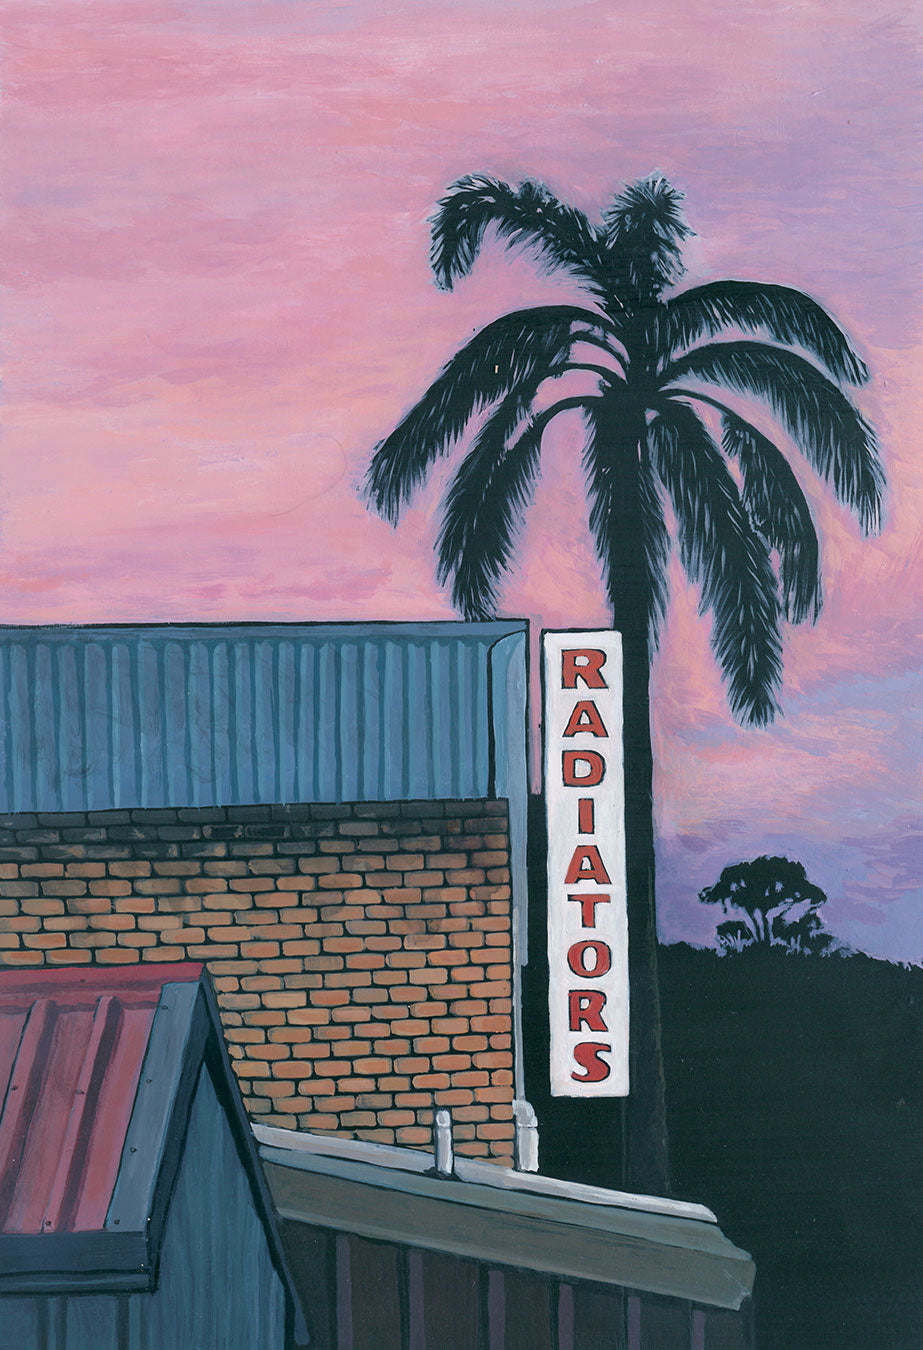 Josh Galletly Art. Painitng of a palm tree and tin roofs at dusk in Lismore, NSW. Acrylic on Plywood 285 x 417mm